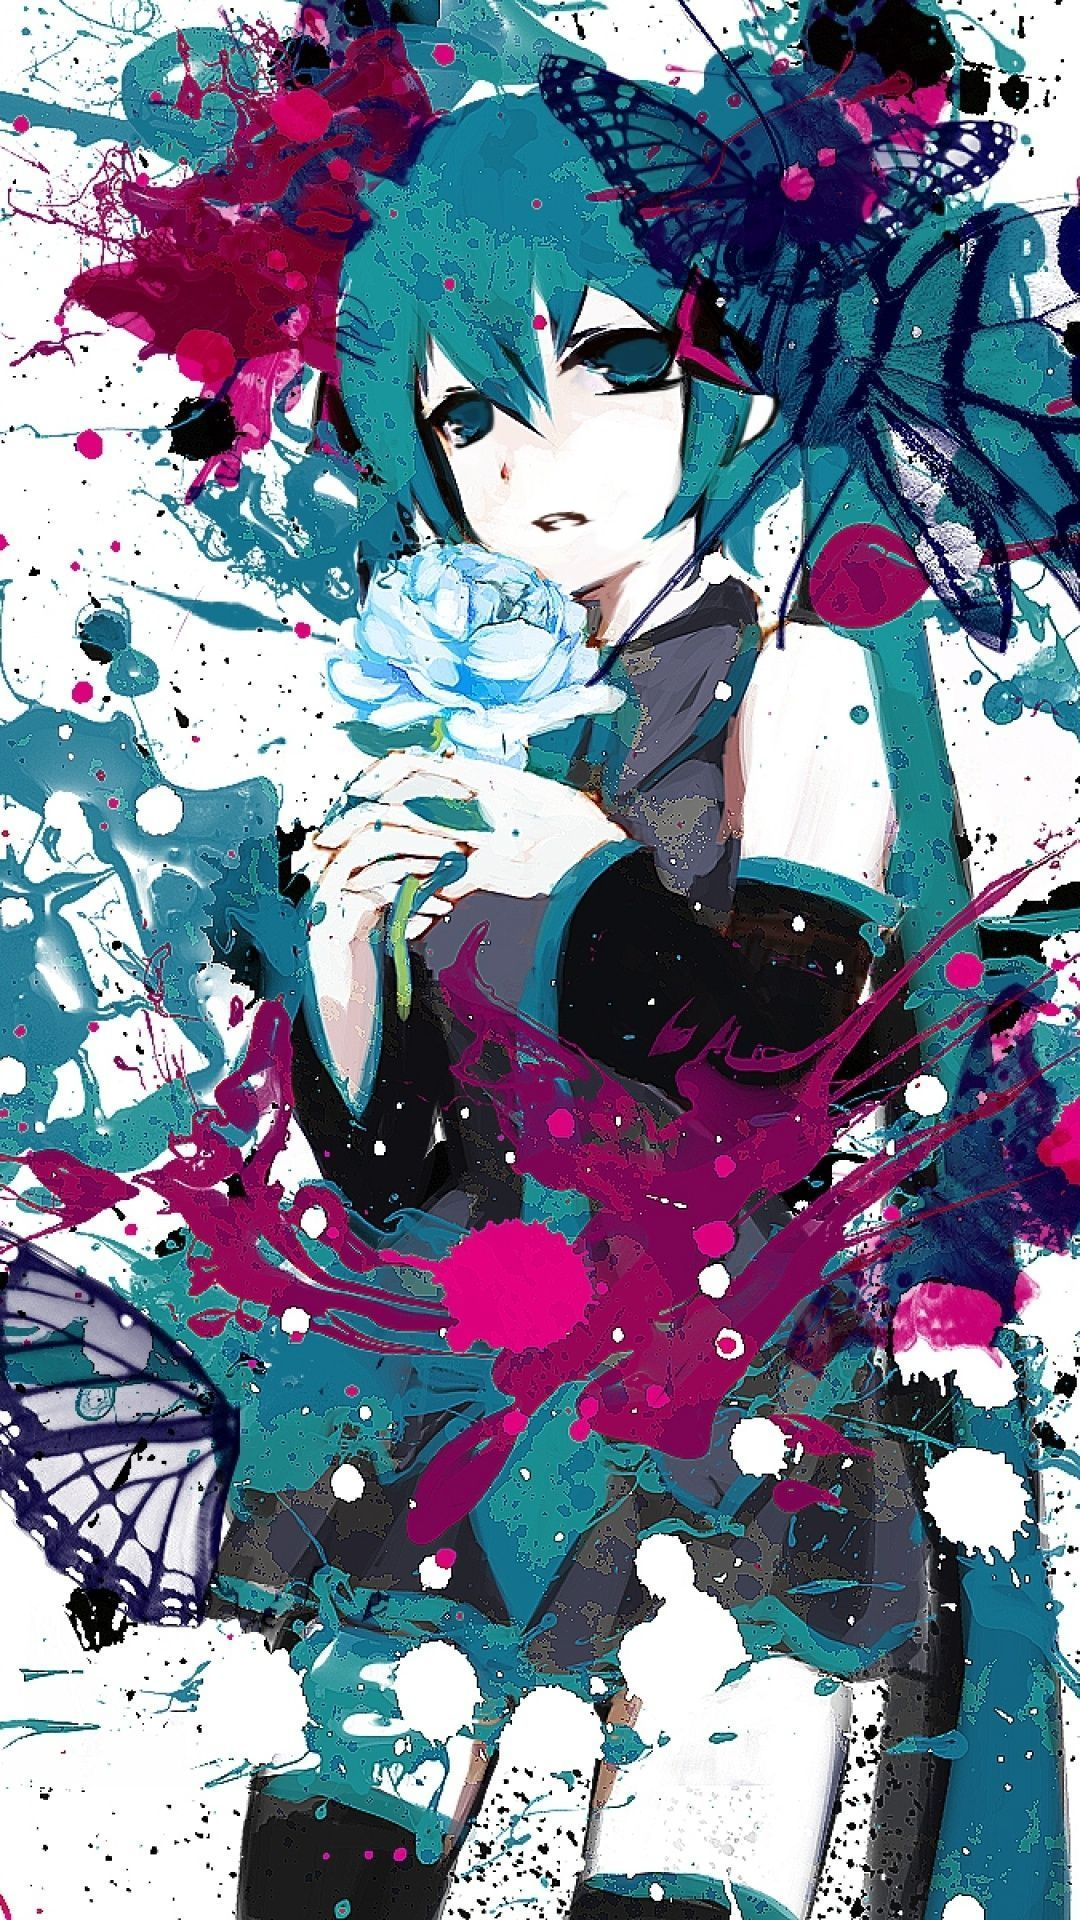 Anime Phone Wallpapers Hd Oboi Fony Hacune Miku Oboi Dlya Telefona